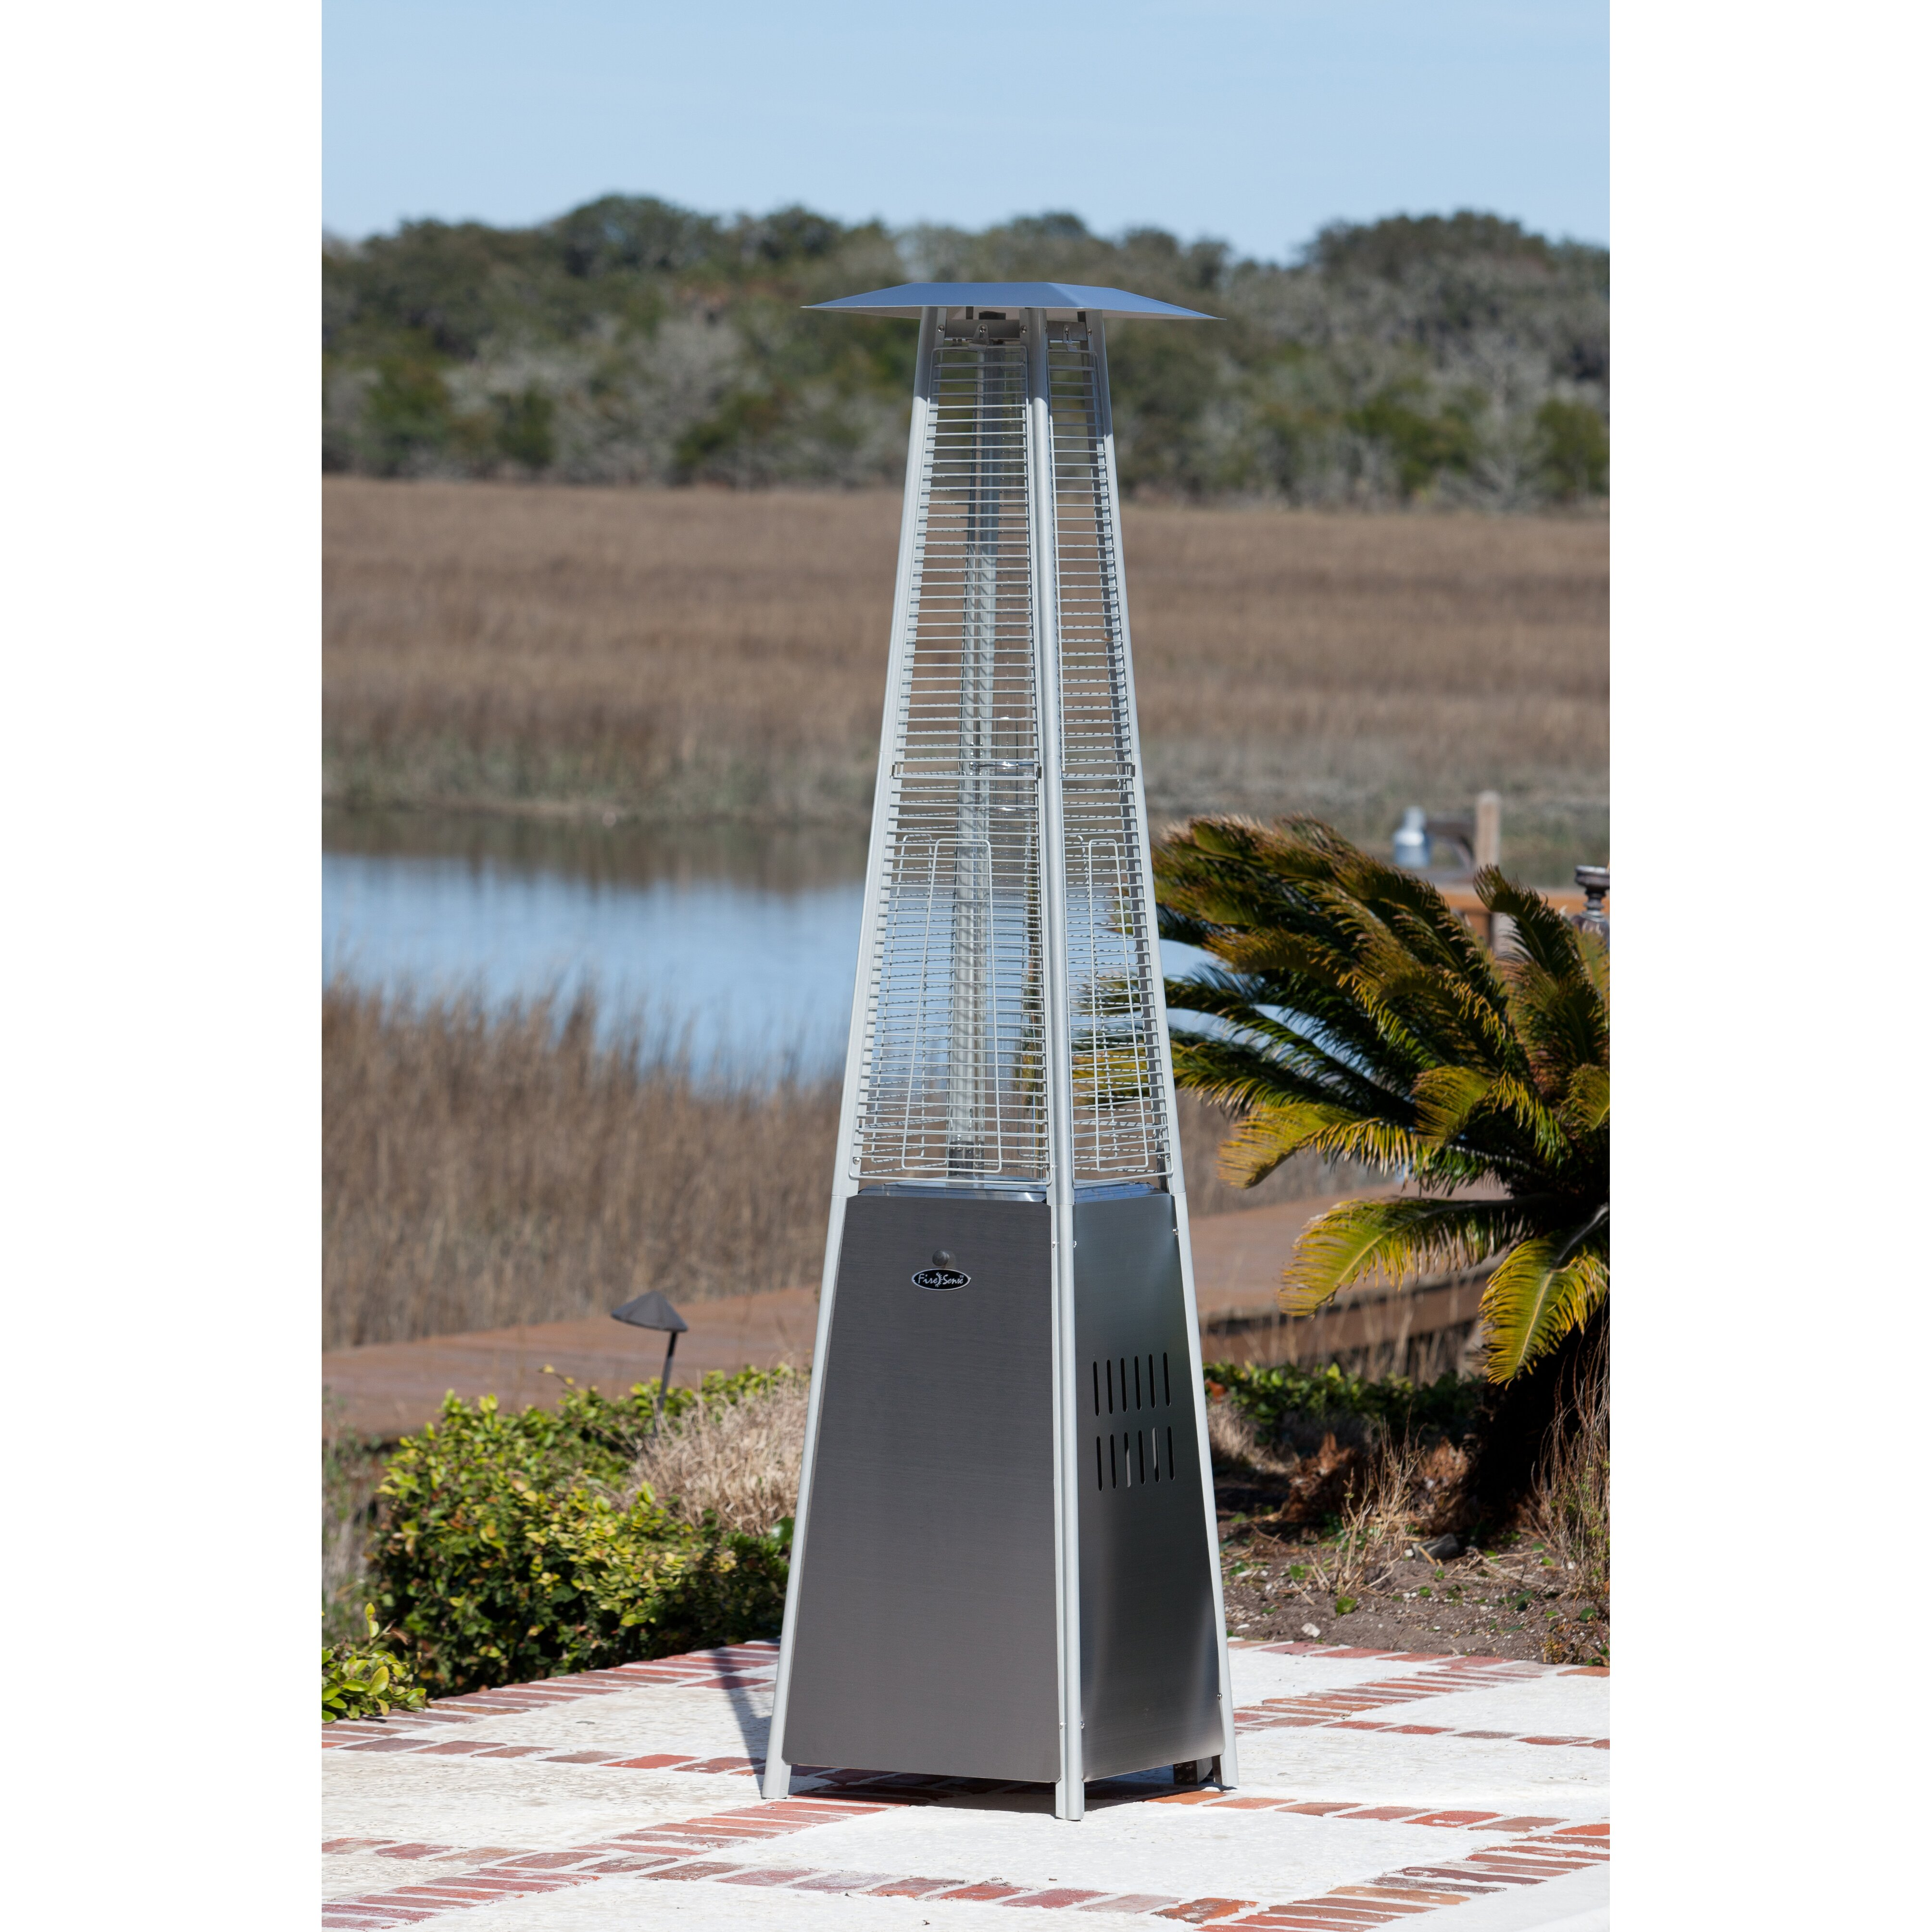 Fire Sense Pyramid Flame 40000 BTU Propane Patio Heater Reviews – Fire Sense Patio Heater